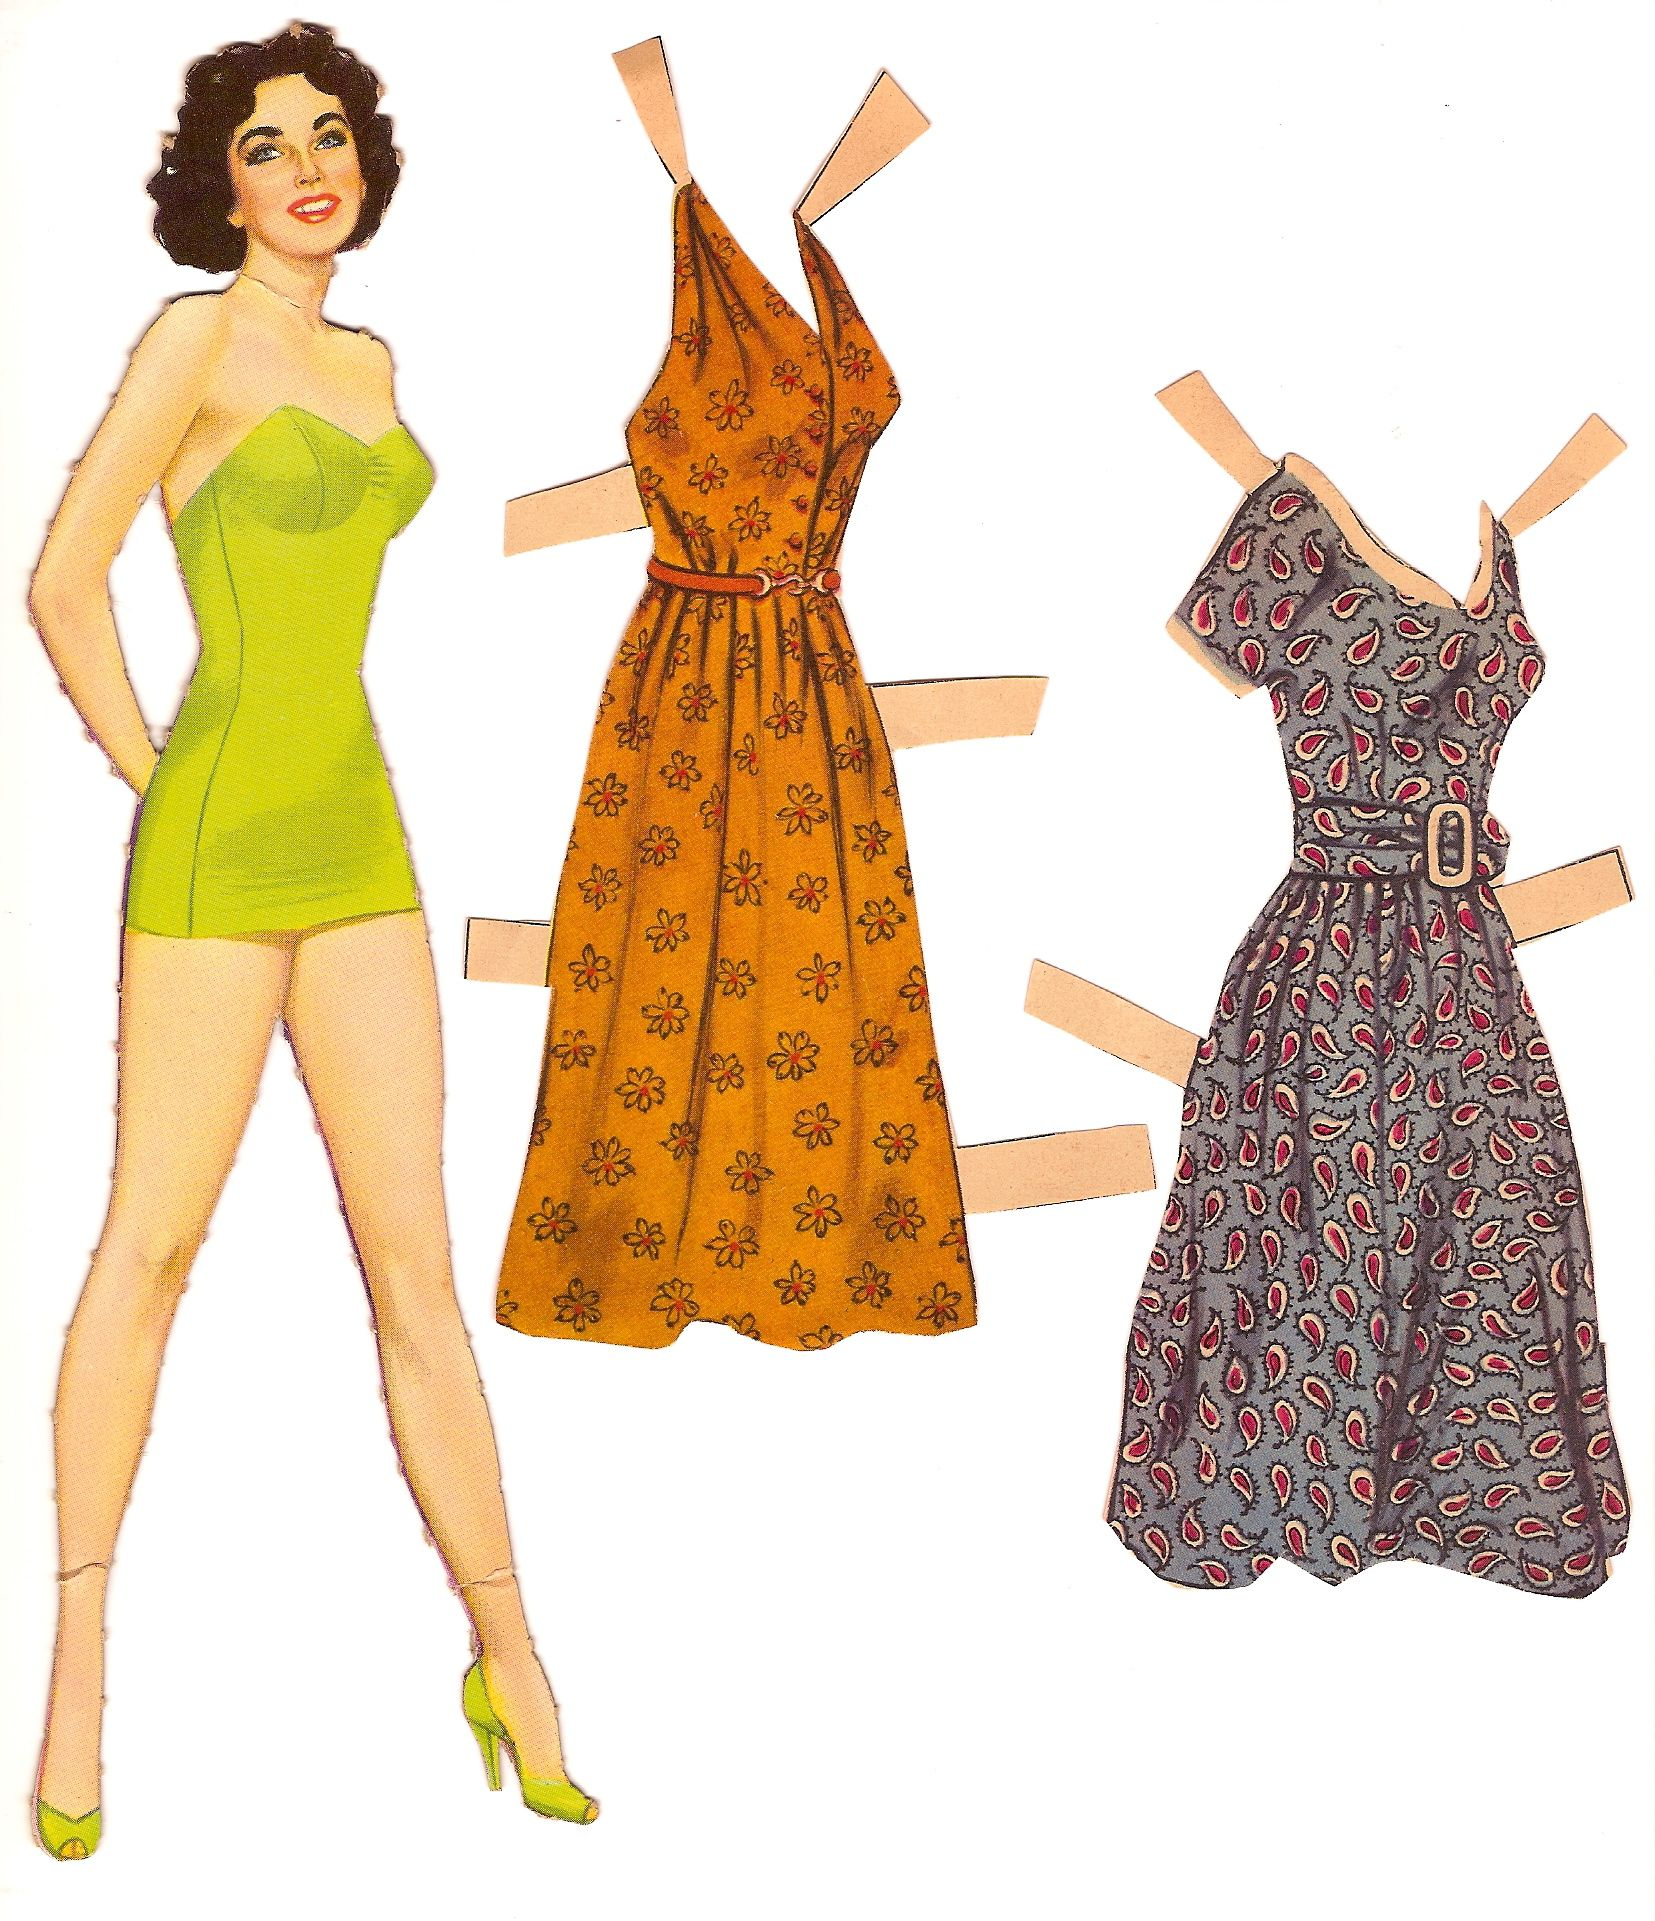 My Sister And I Always Bought Paper Dolls At The Dime Store On